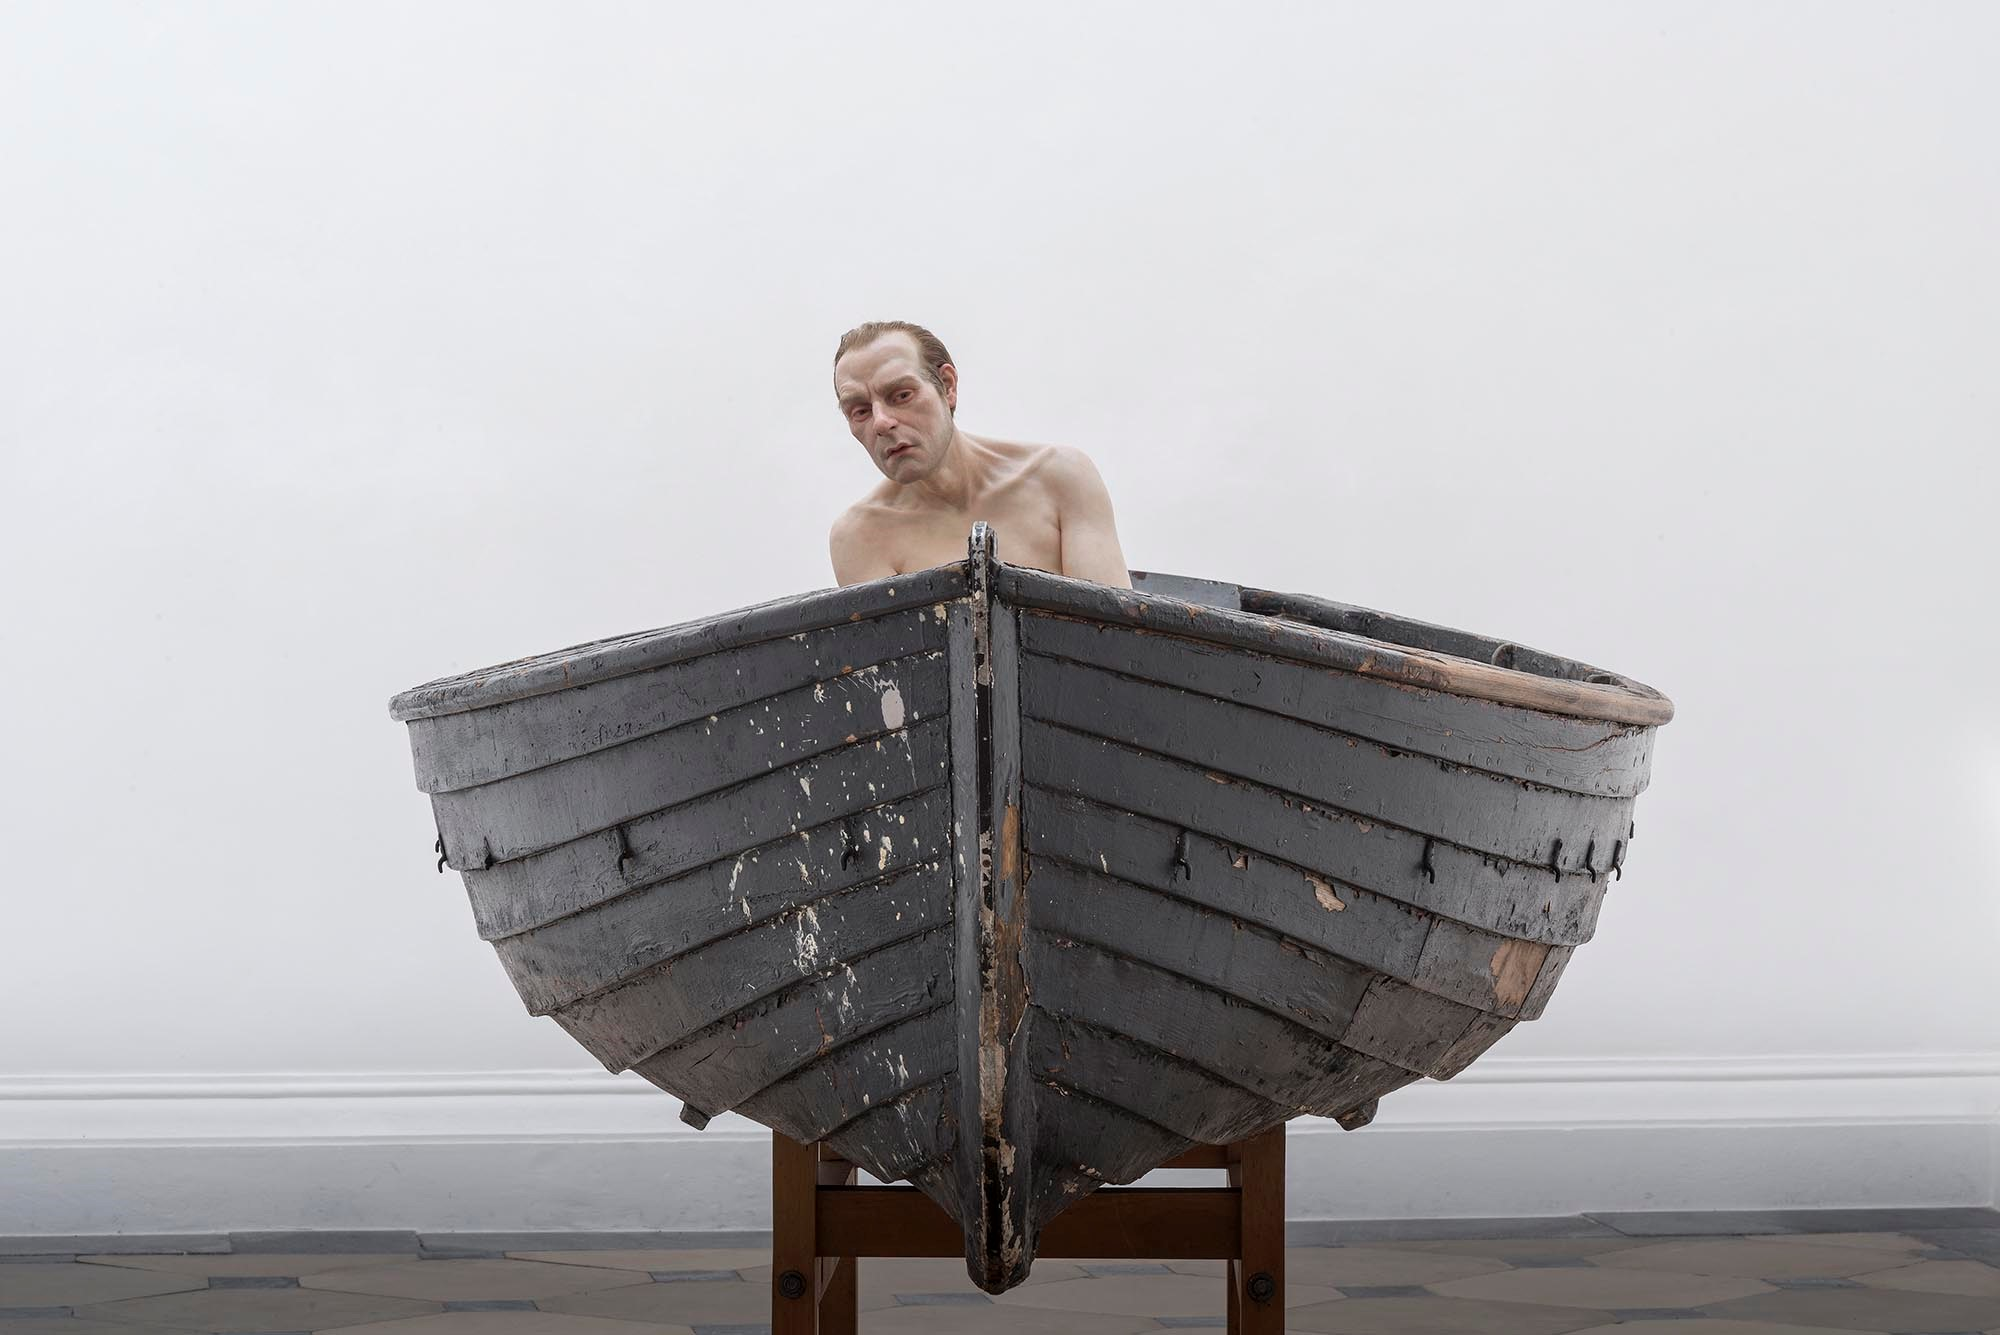 Mueck - Man in a Boat